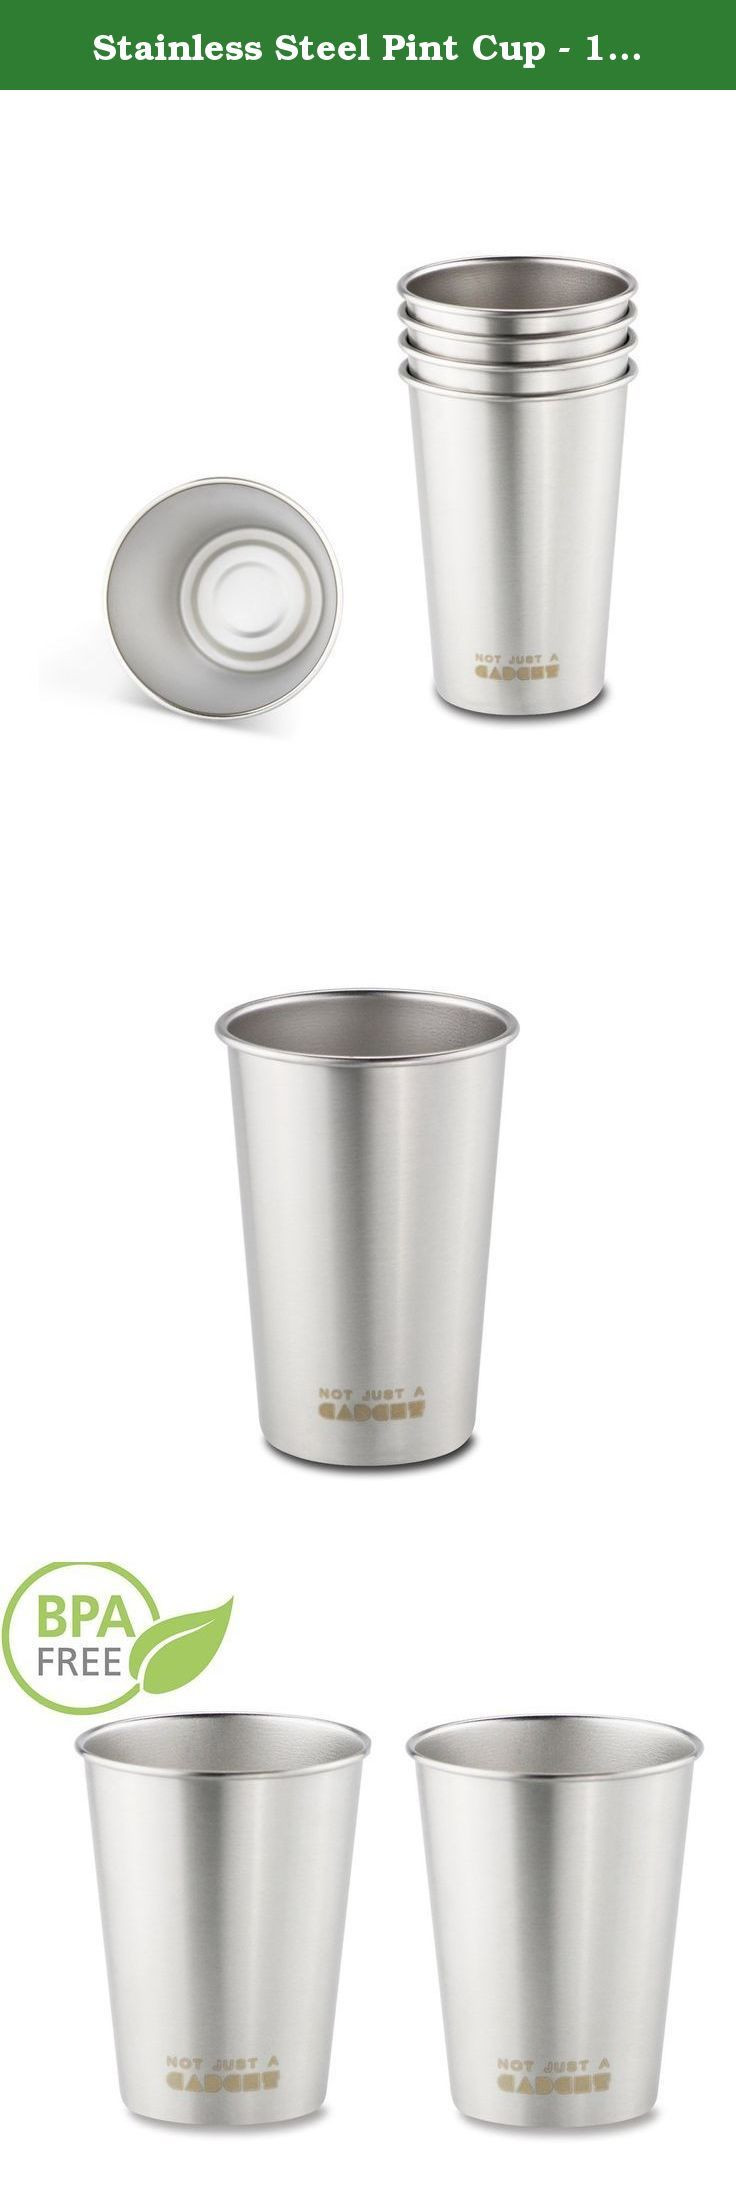 Stainless Steel Pint Cup - 18/8 Food-grade Tumbler Mug for Camping and Hiking - by Not Just A Gadget. −These stainless cups would be wonderful for camping, outdoor picnics, barbeques and parties. They are amazing versatile Stainless Steel Pint Cups by Not Just A Gadget ! −Really useful in summer, these tend to keep cool drinks colder. They do not change the way whatever you're drinking tastes at all. ★ Safe & Hygienic: Stainless Steel Pint Cups are 100% safe, non toxic, PBA free. ★ Great…